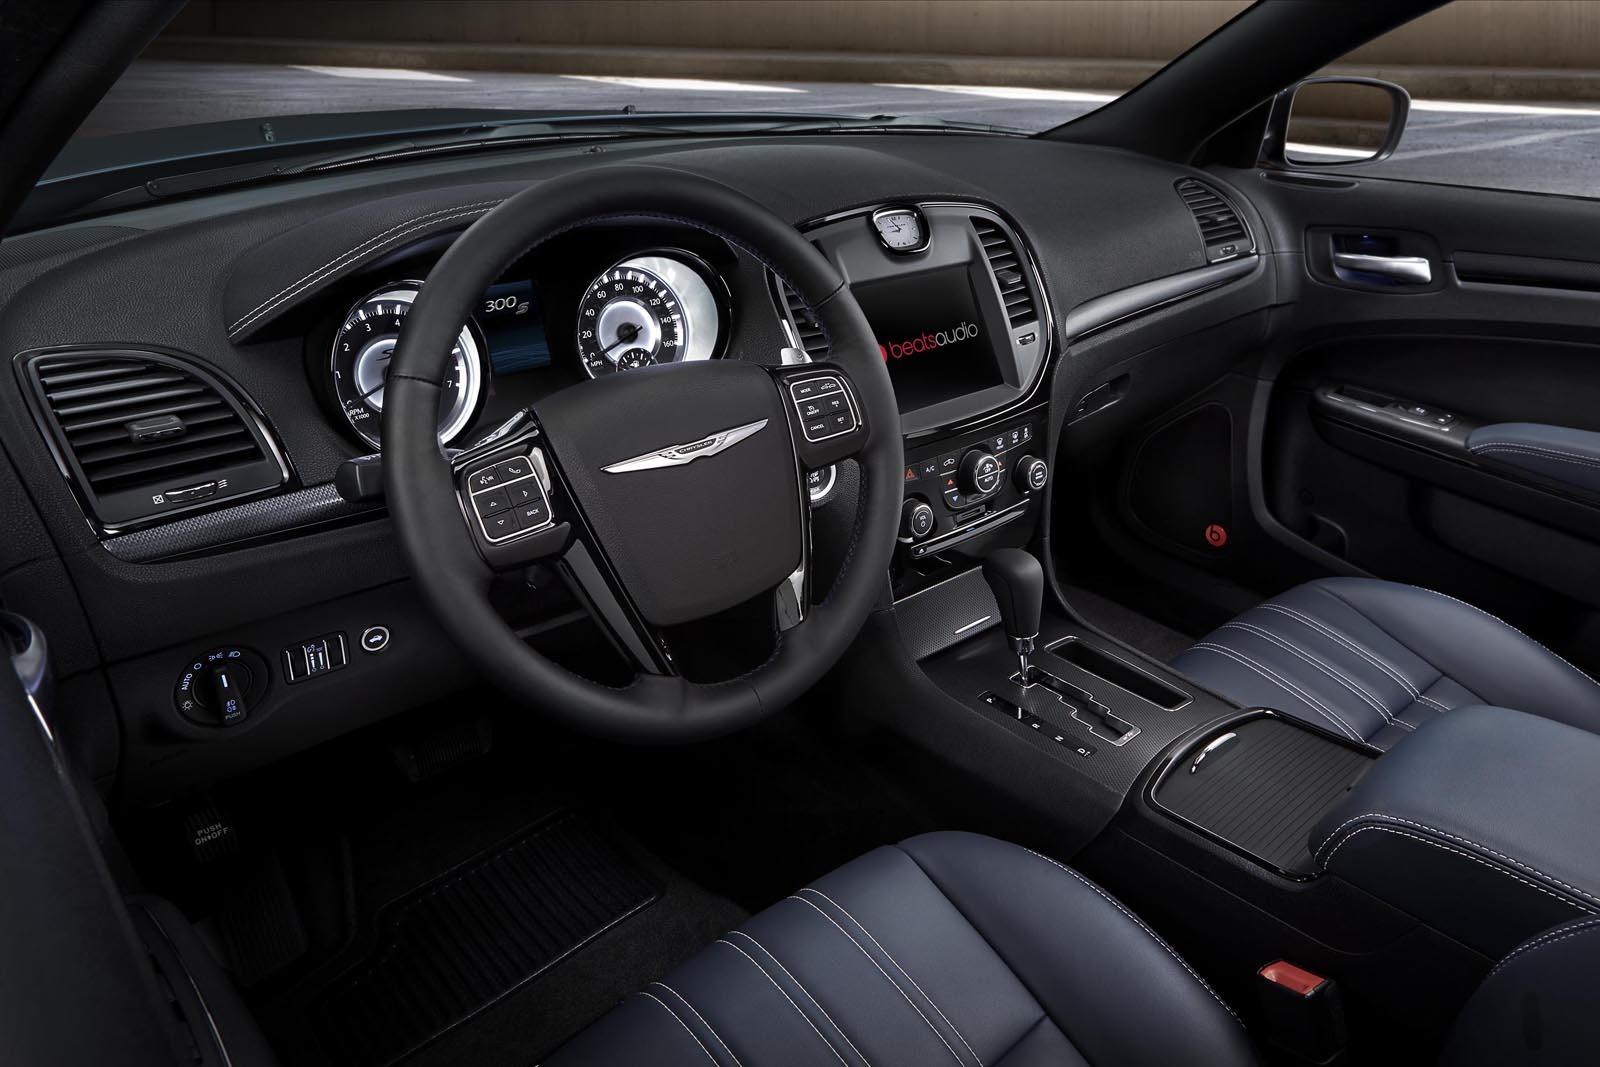 2014 chrysler 300s revealed with updated blacked out look new interior color autoevolution. Black Bedroom Furniture Sets. Home Design Ideas